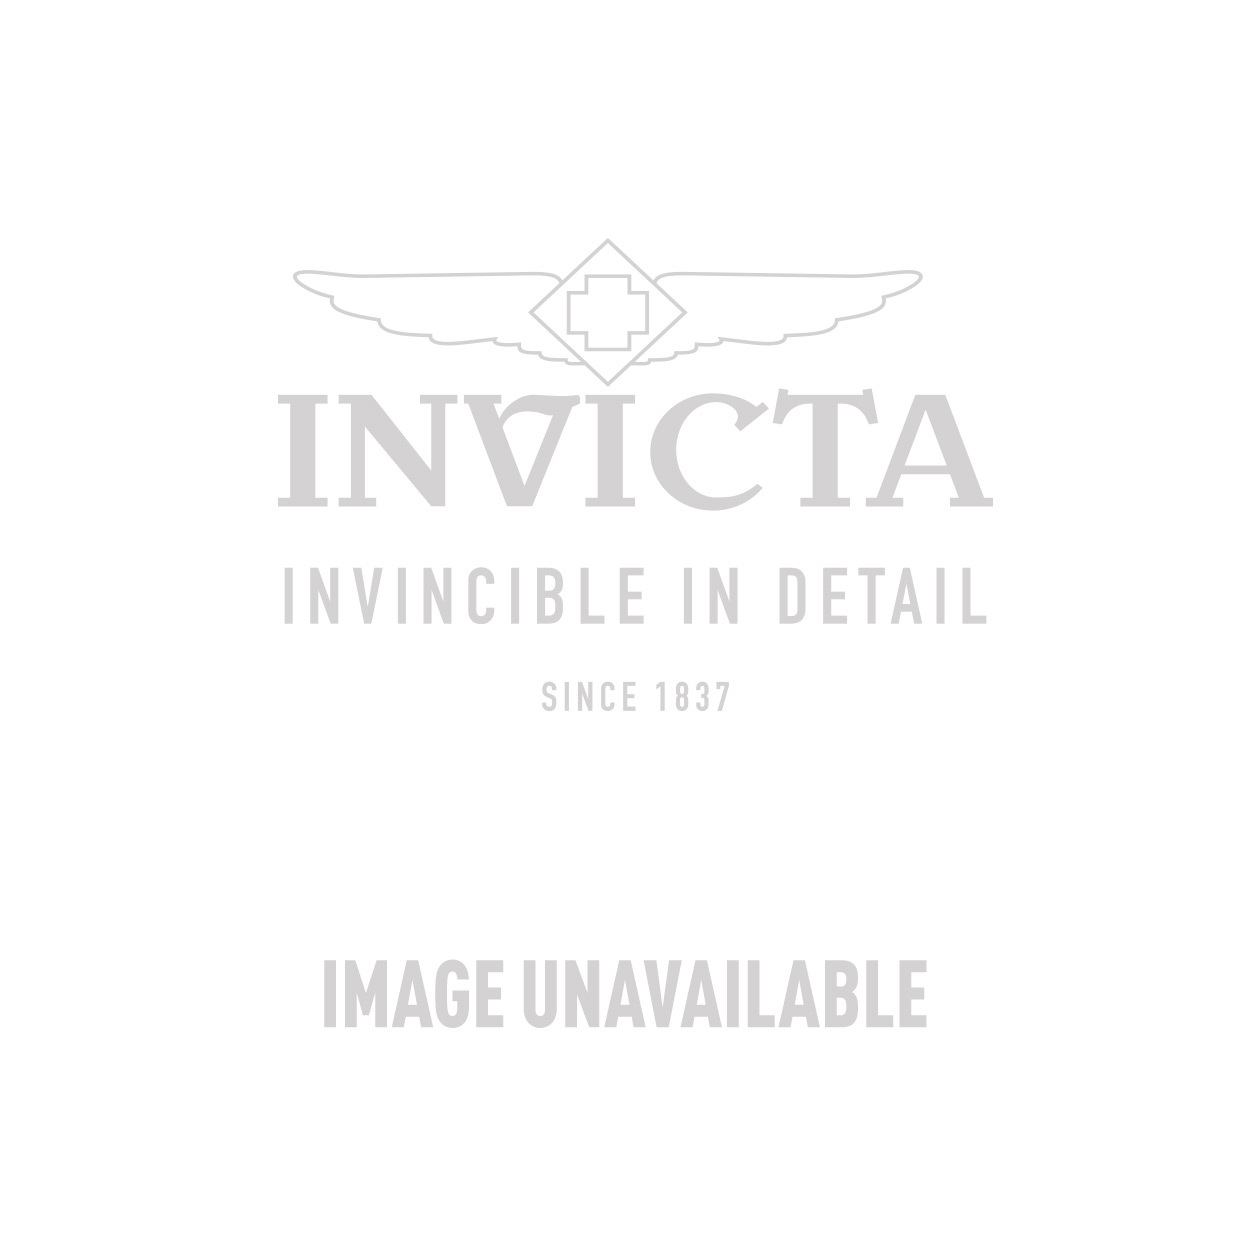 Invicta Pro Diver Swiss Movement Quartz Watch - Stainless Steel case Stainless Steel band - Model 18516